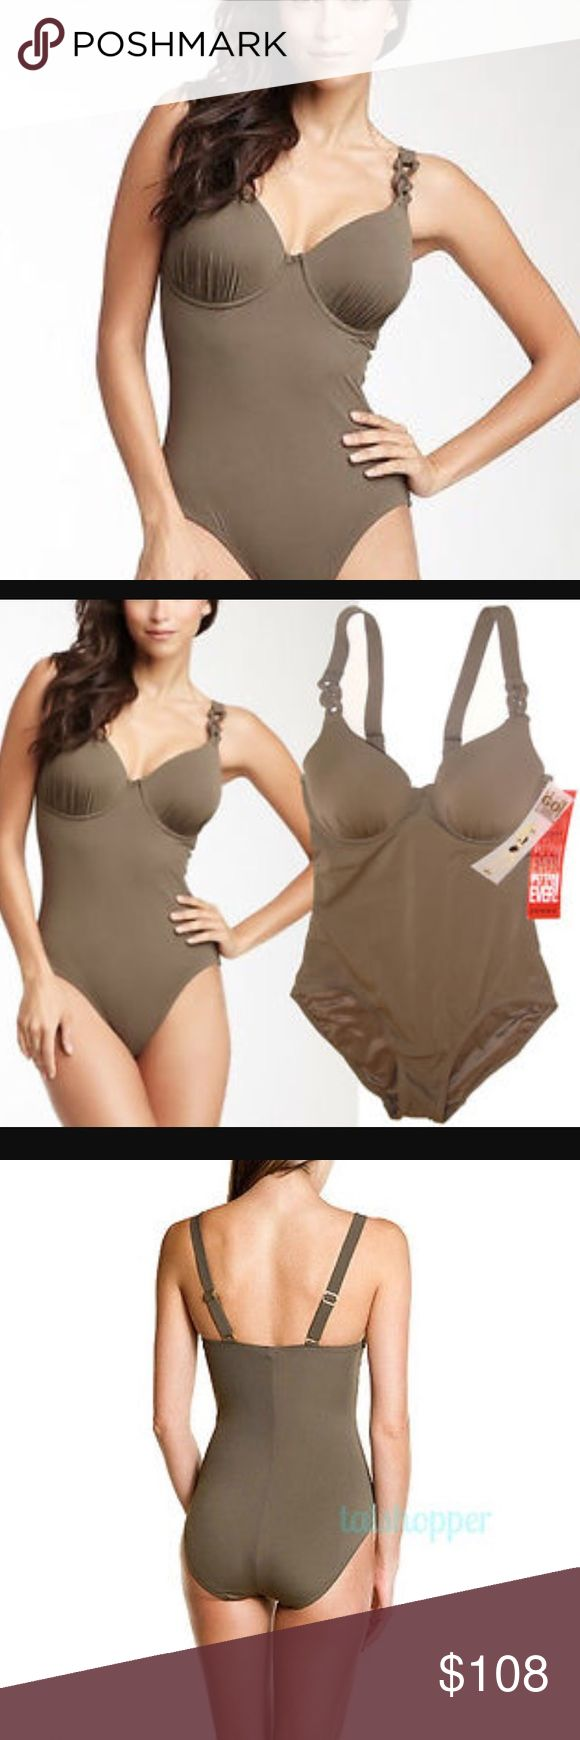 END OF SEASON SALE Spanx shape wear NWT. BOUGHT AND NEVER WORN. Pewter 6D/DD. Most comfortable body shaping ever SPANX Swim One Pieces